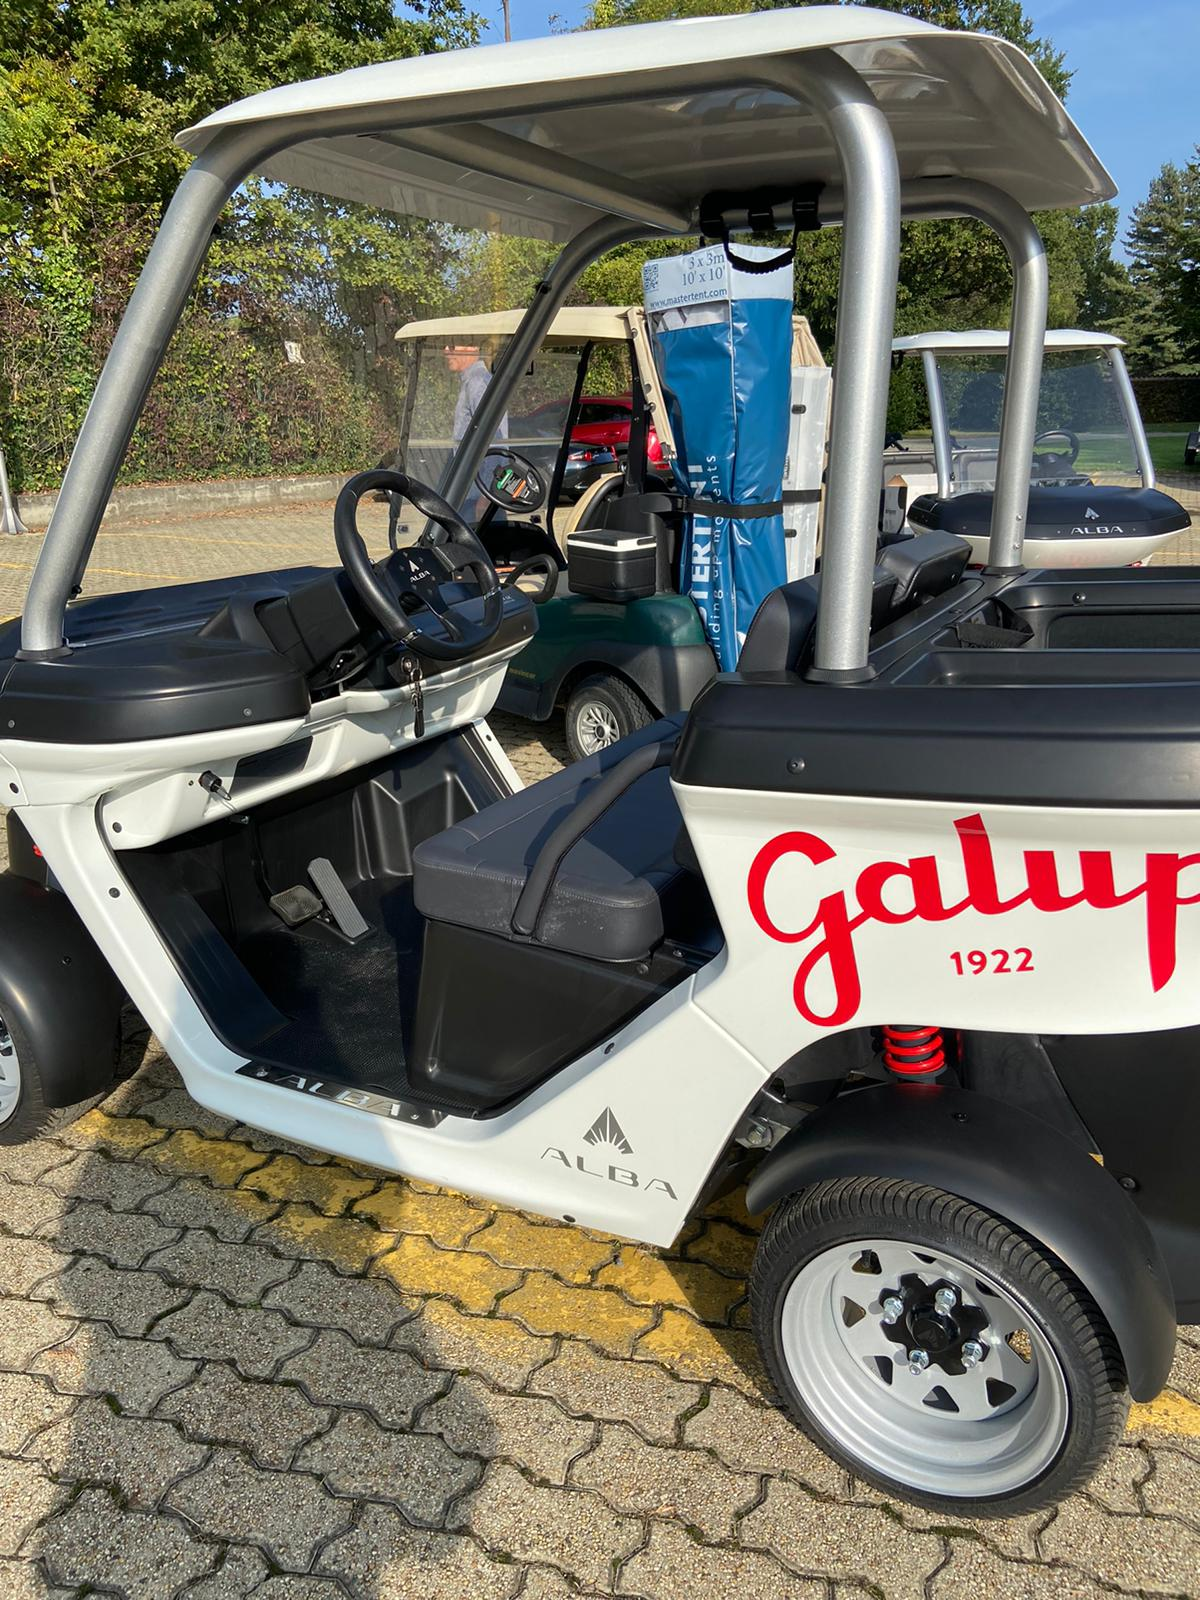 Alba Cart - wrapping Galup